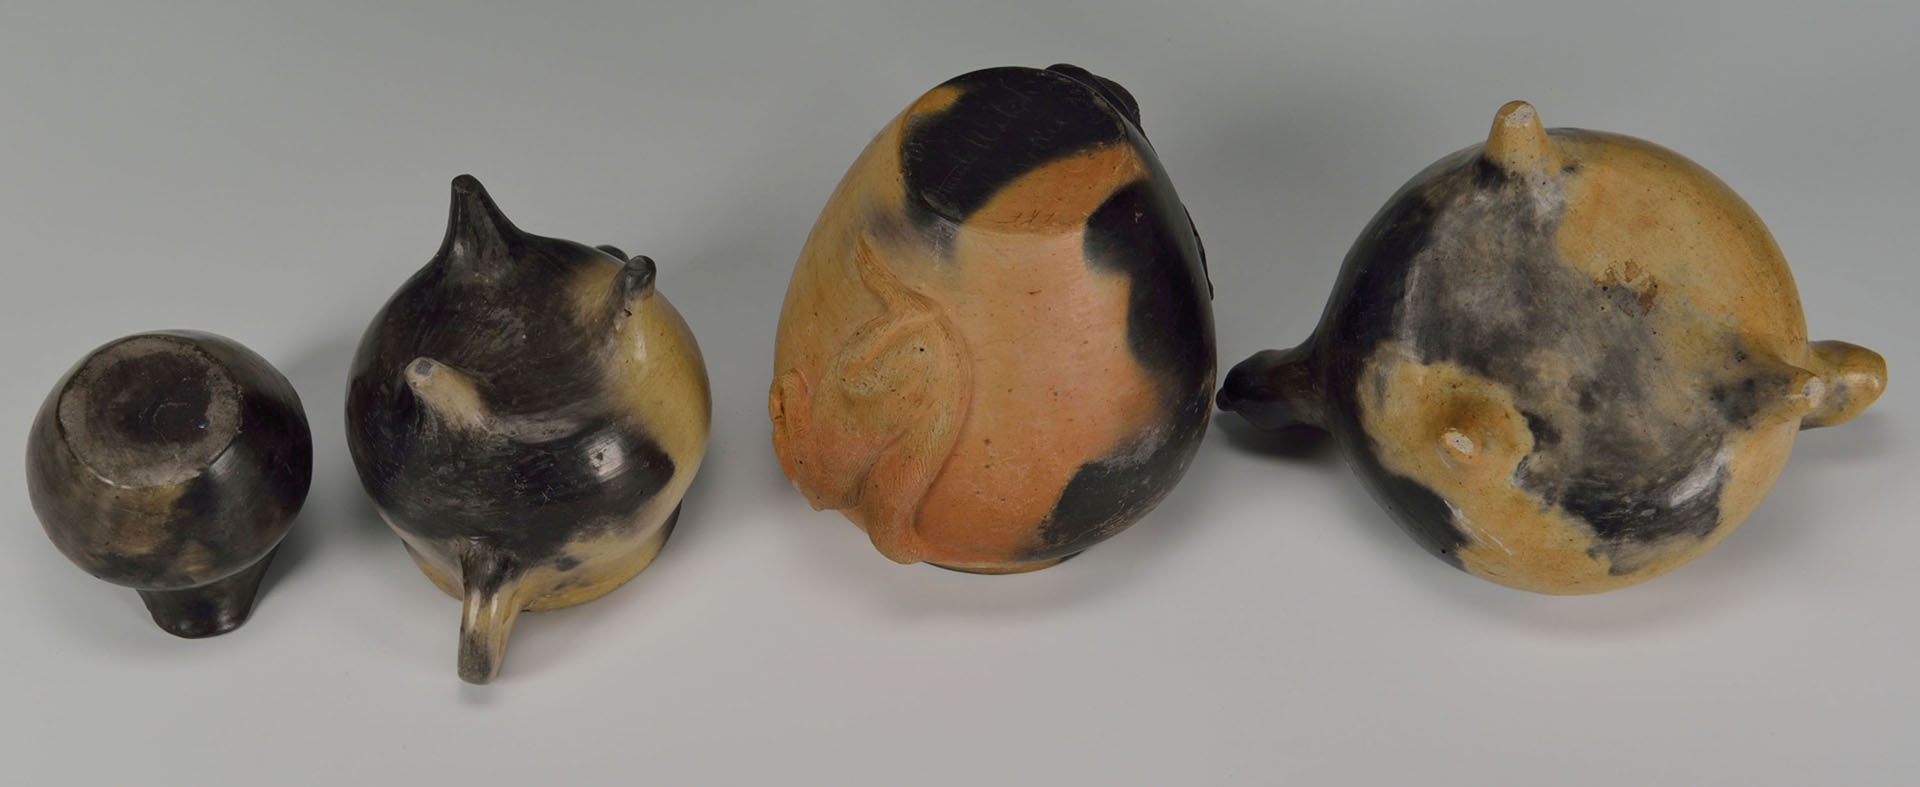 4 pieces of Cherokee Pottery incl. Maude Welch